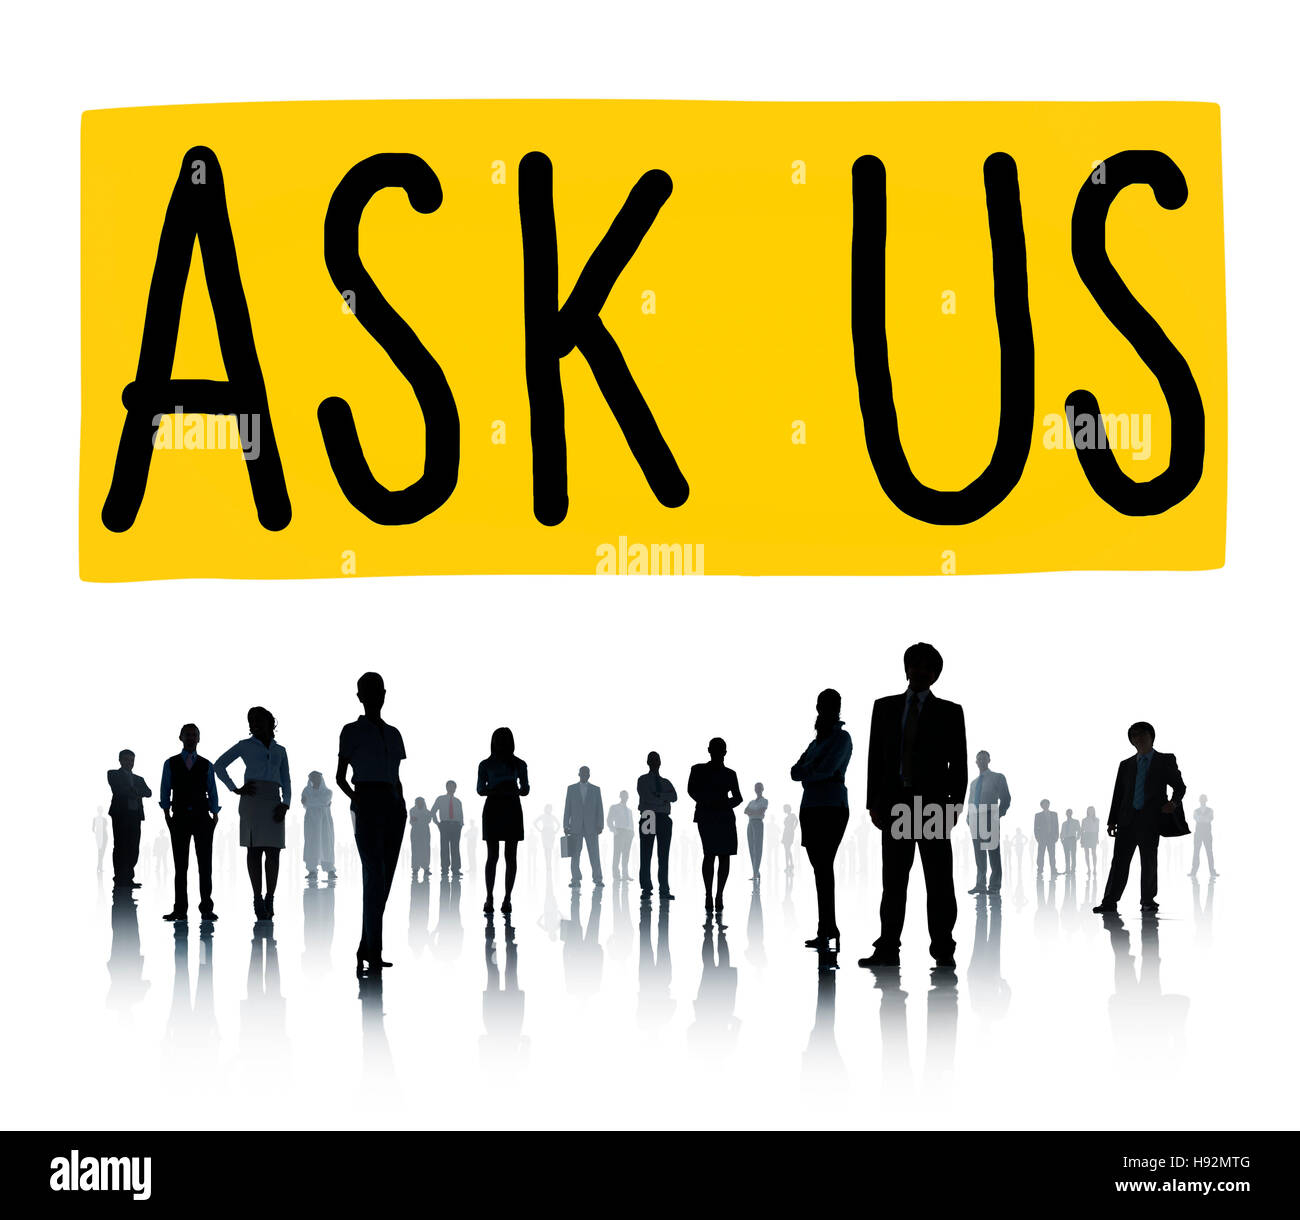 Ask Us Inquiries Questions Concerns Contact Concept - Stock Image